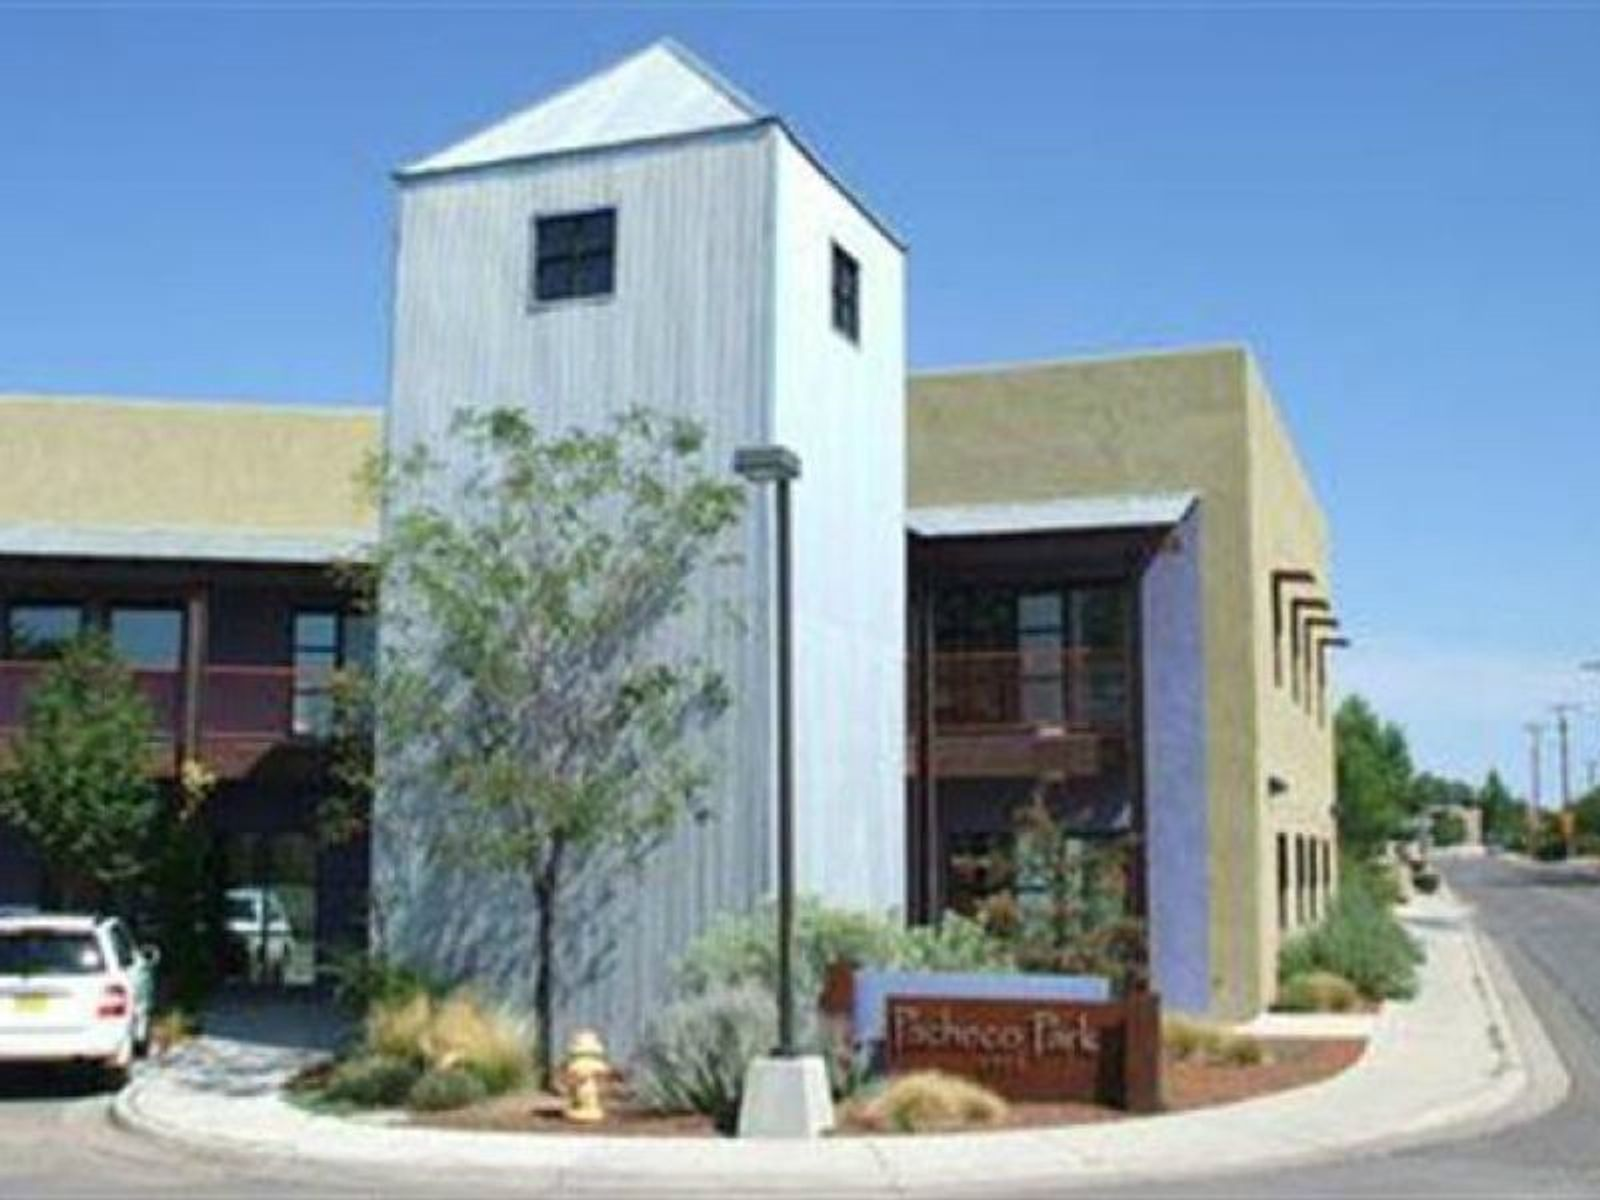 1512 Pacheco Street D-105, Santa Fe NM Commercial - Santa Fe Real Estate